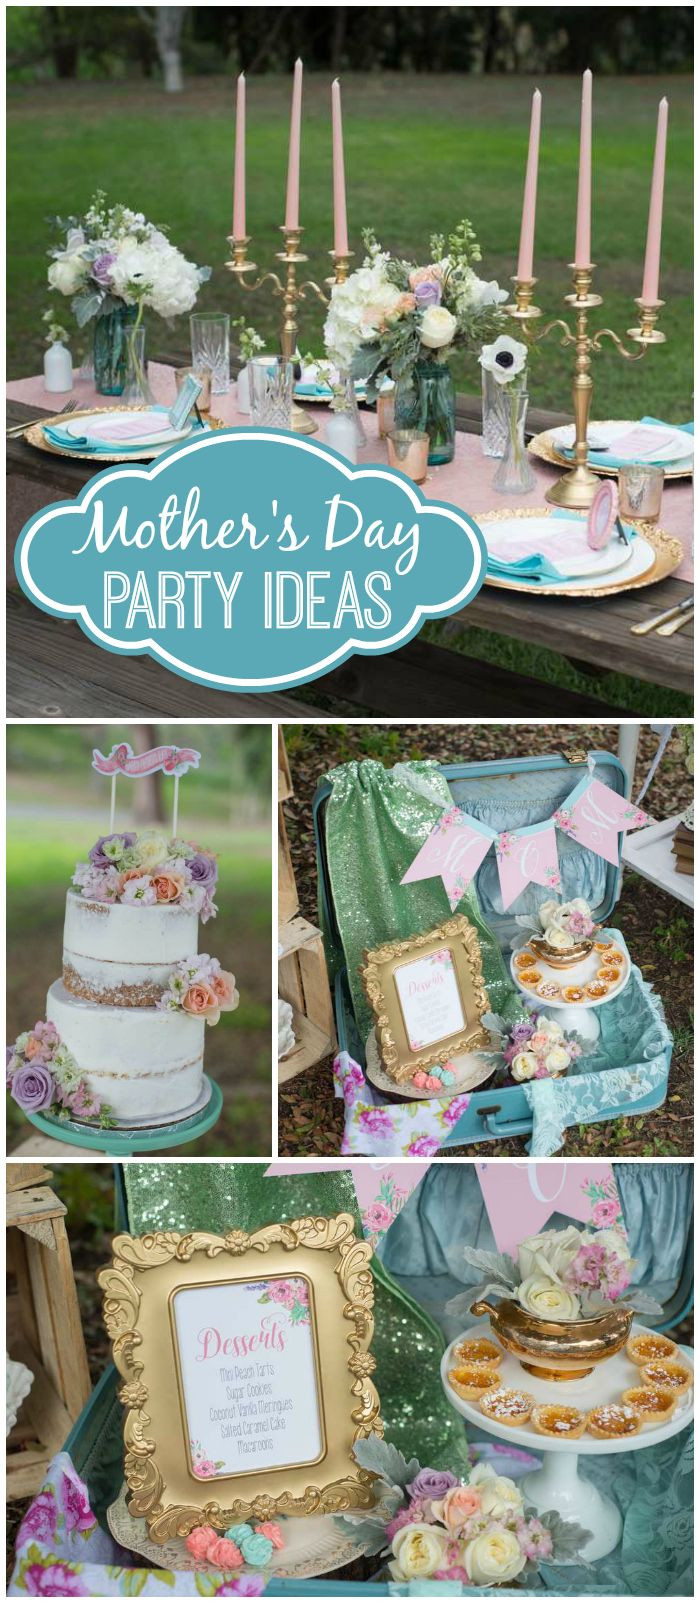 Pinterest Mothers Day Gift Ideas  Best 25 Mothers day ideas ideas on Pinterest